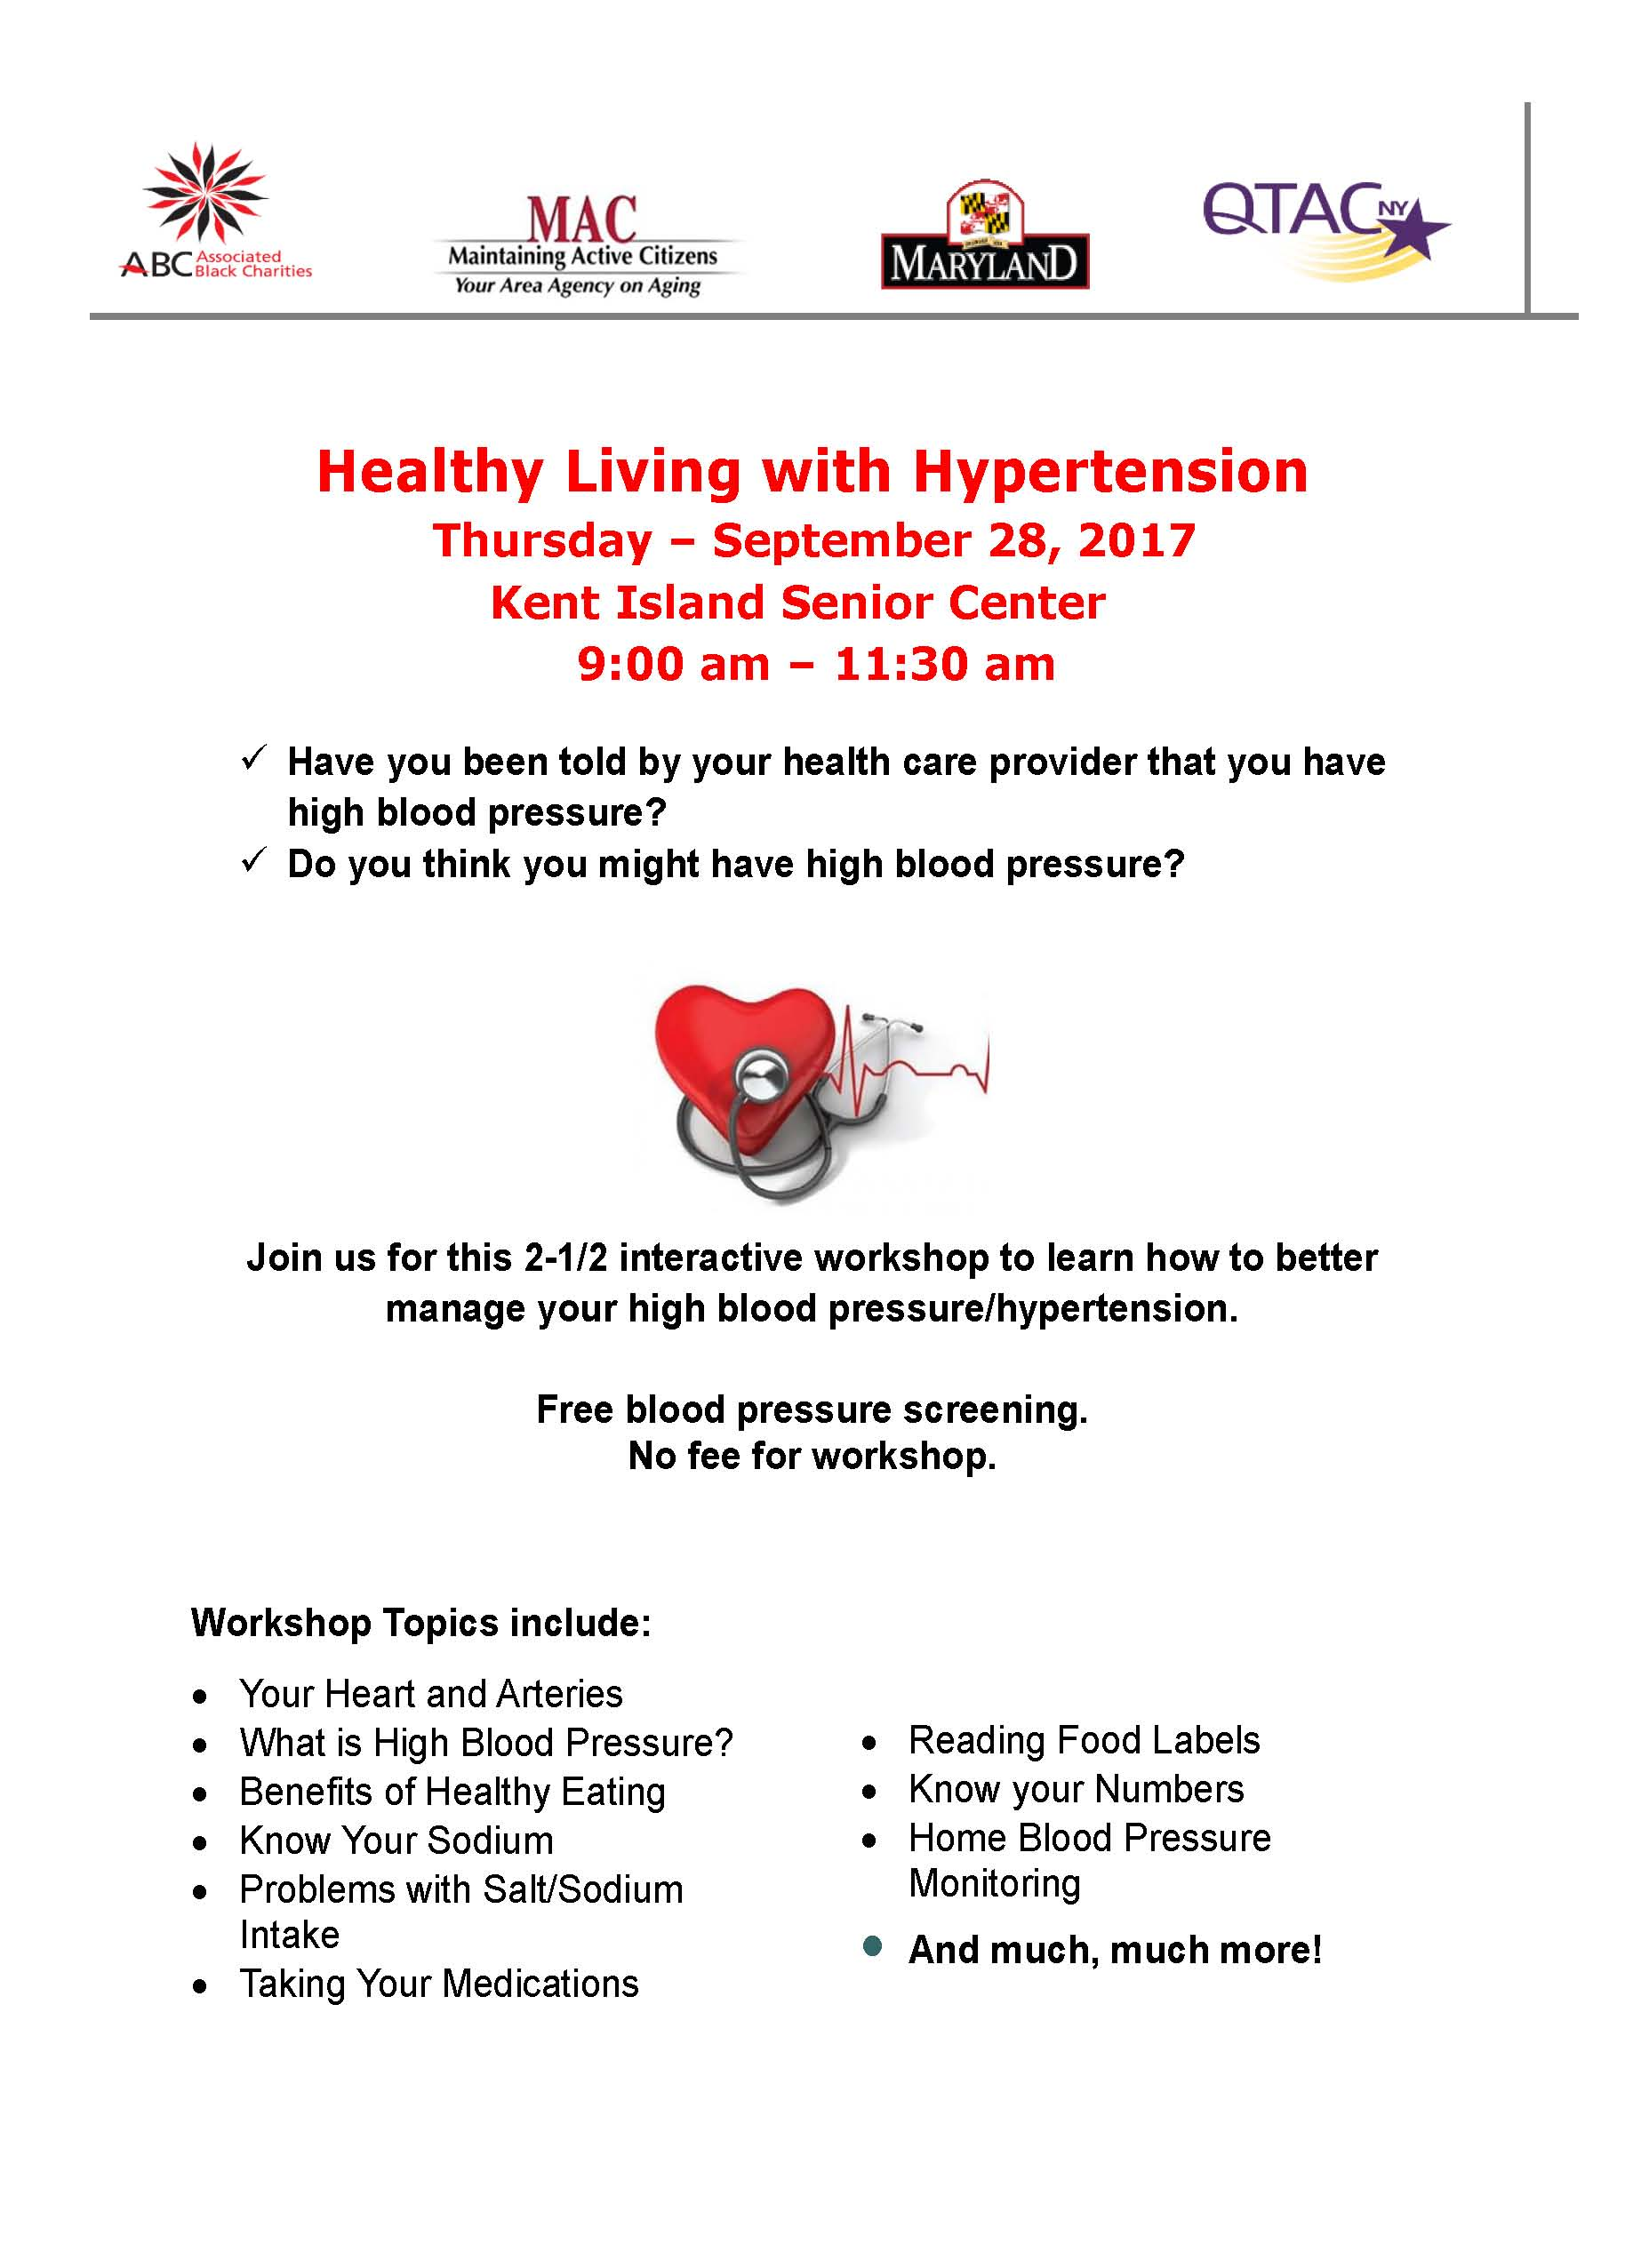 2017_9 Healthy Living with Hypertension kisc